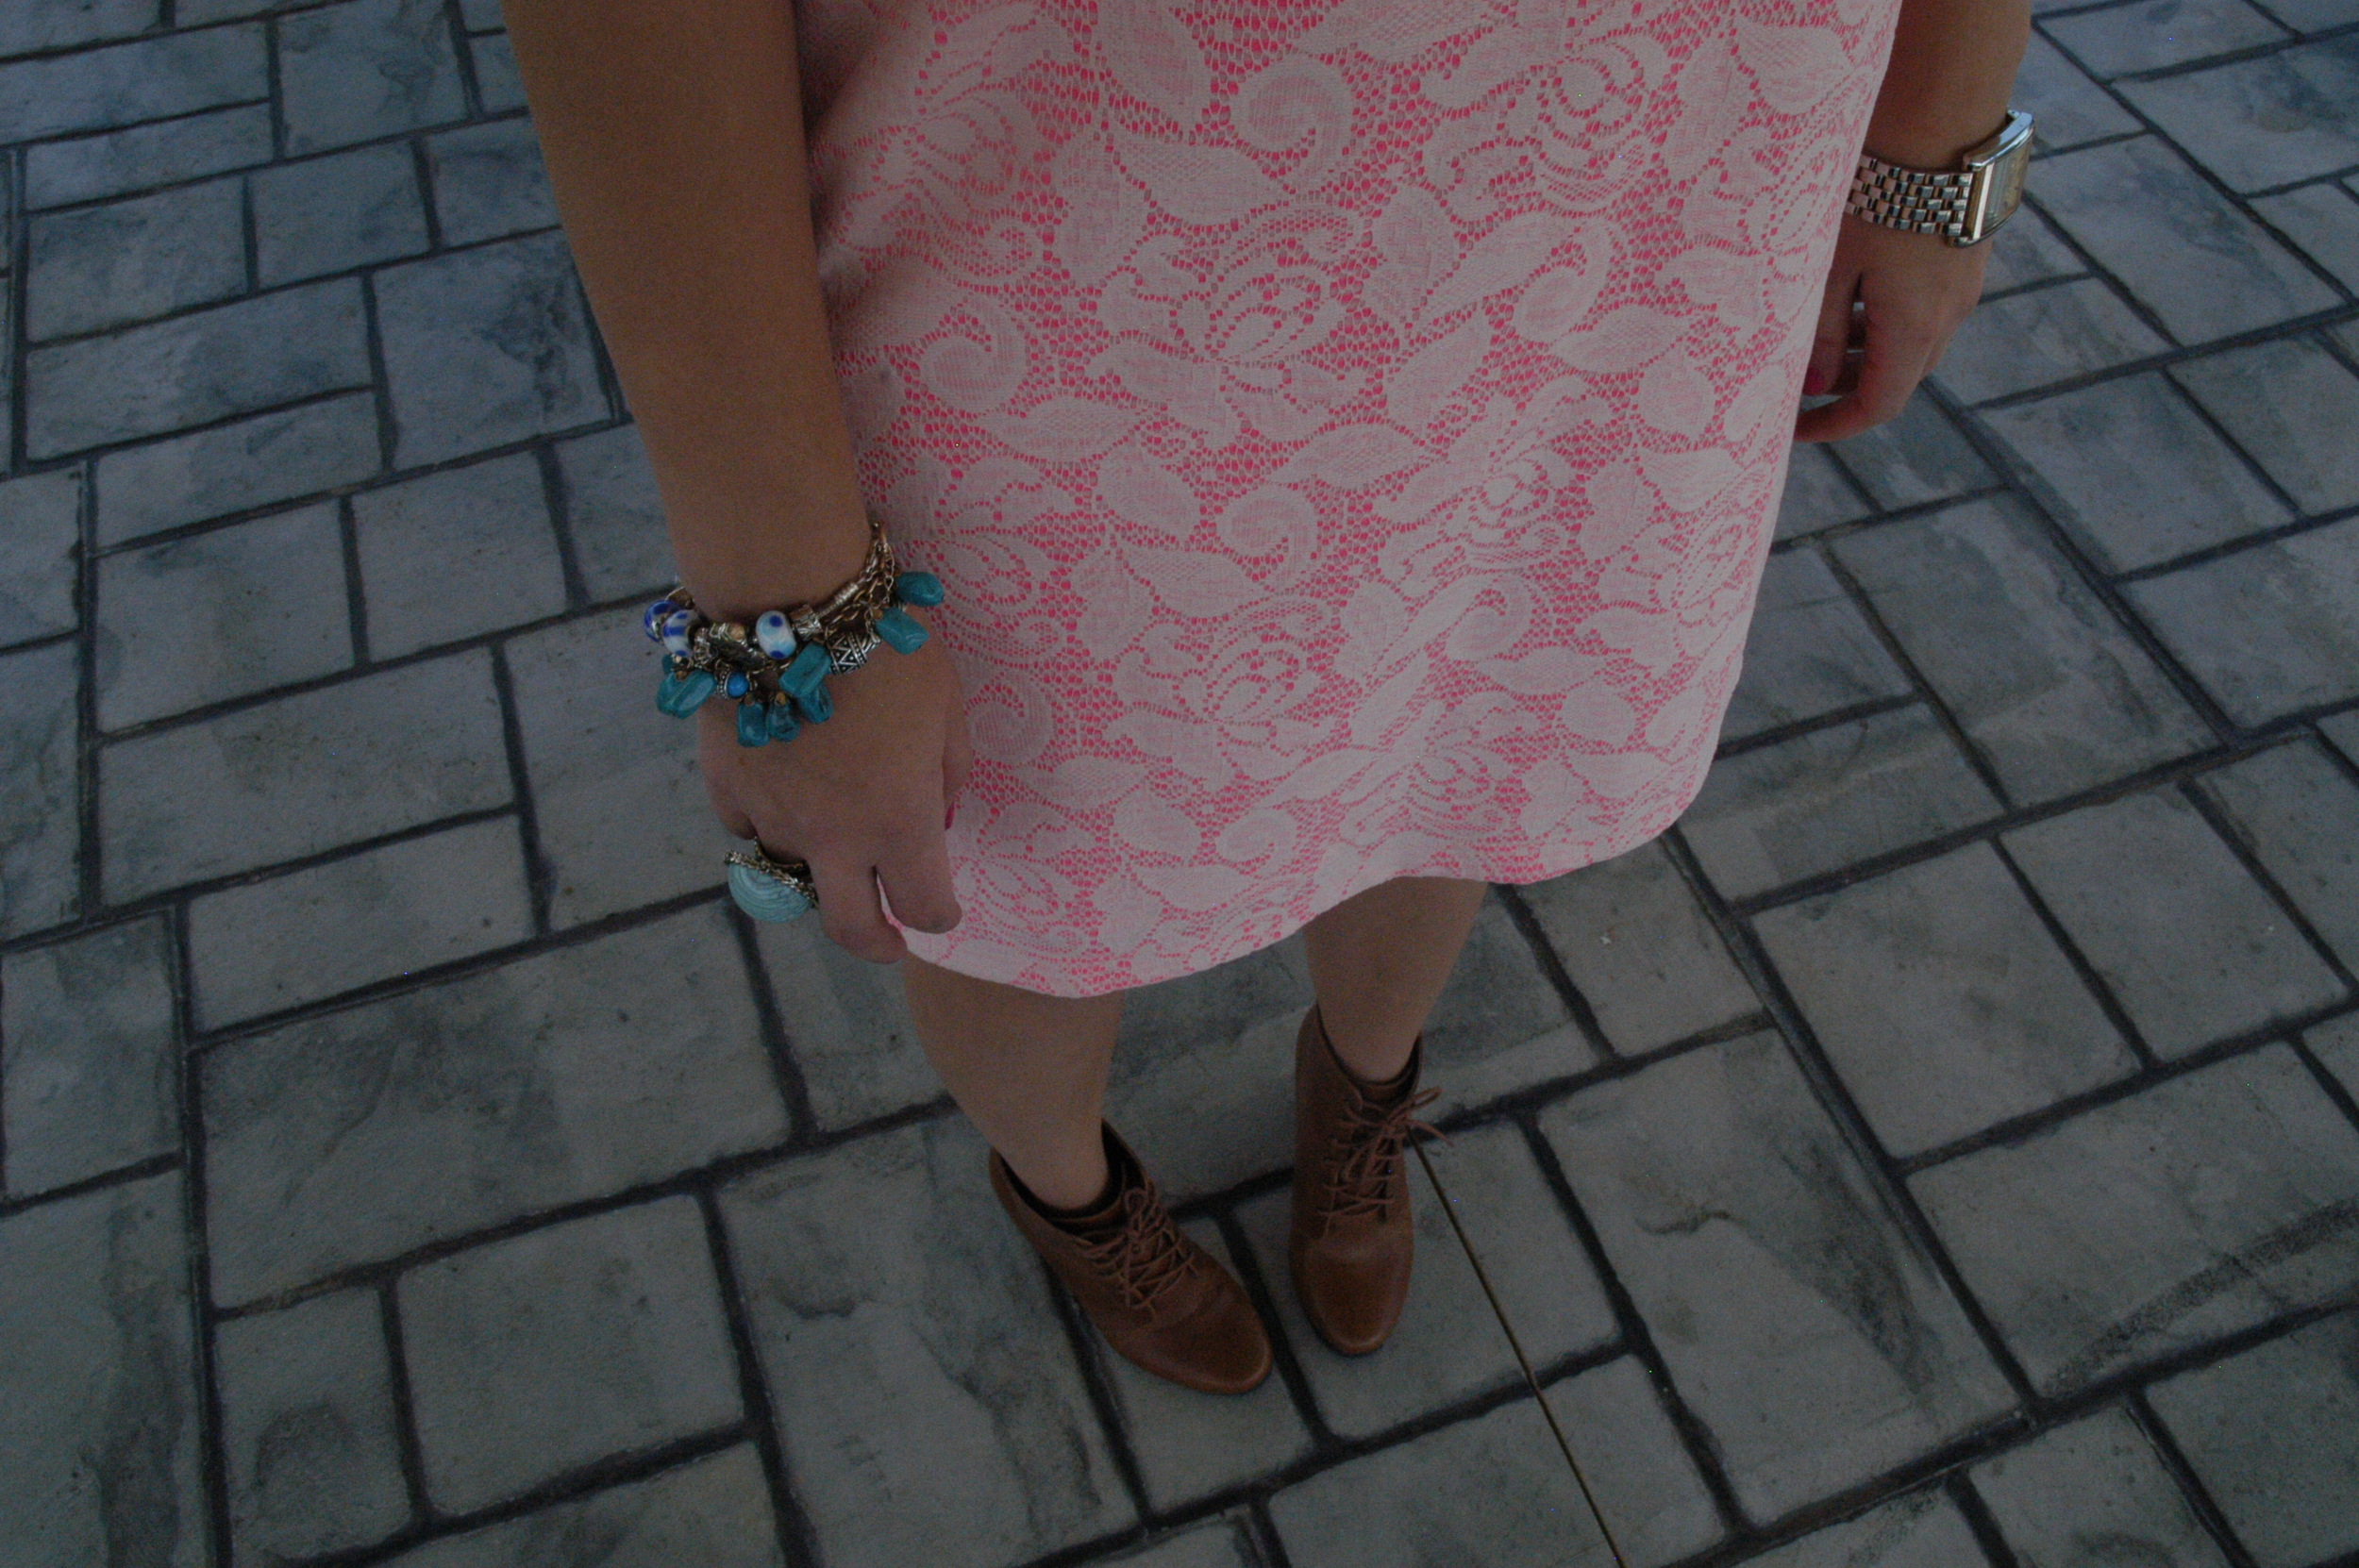 My look: Dress: H&M | Shirt:  H&M  | Scarf: H&M | Shoes: Deena & Ozzy | Jewelry: gift, H&M and Landau